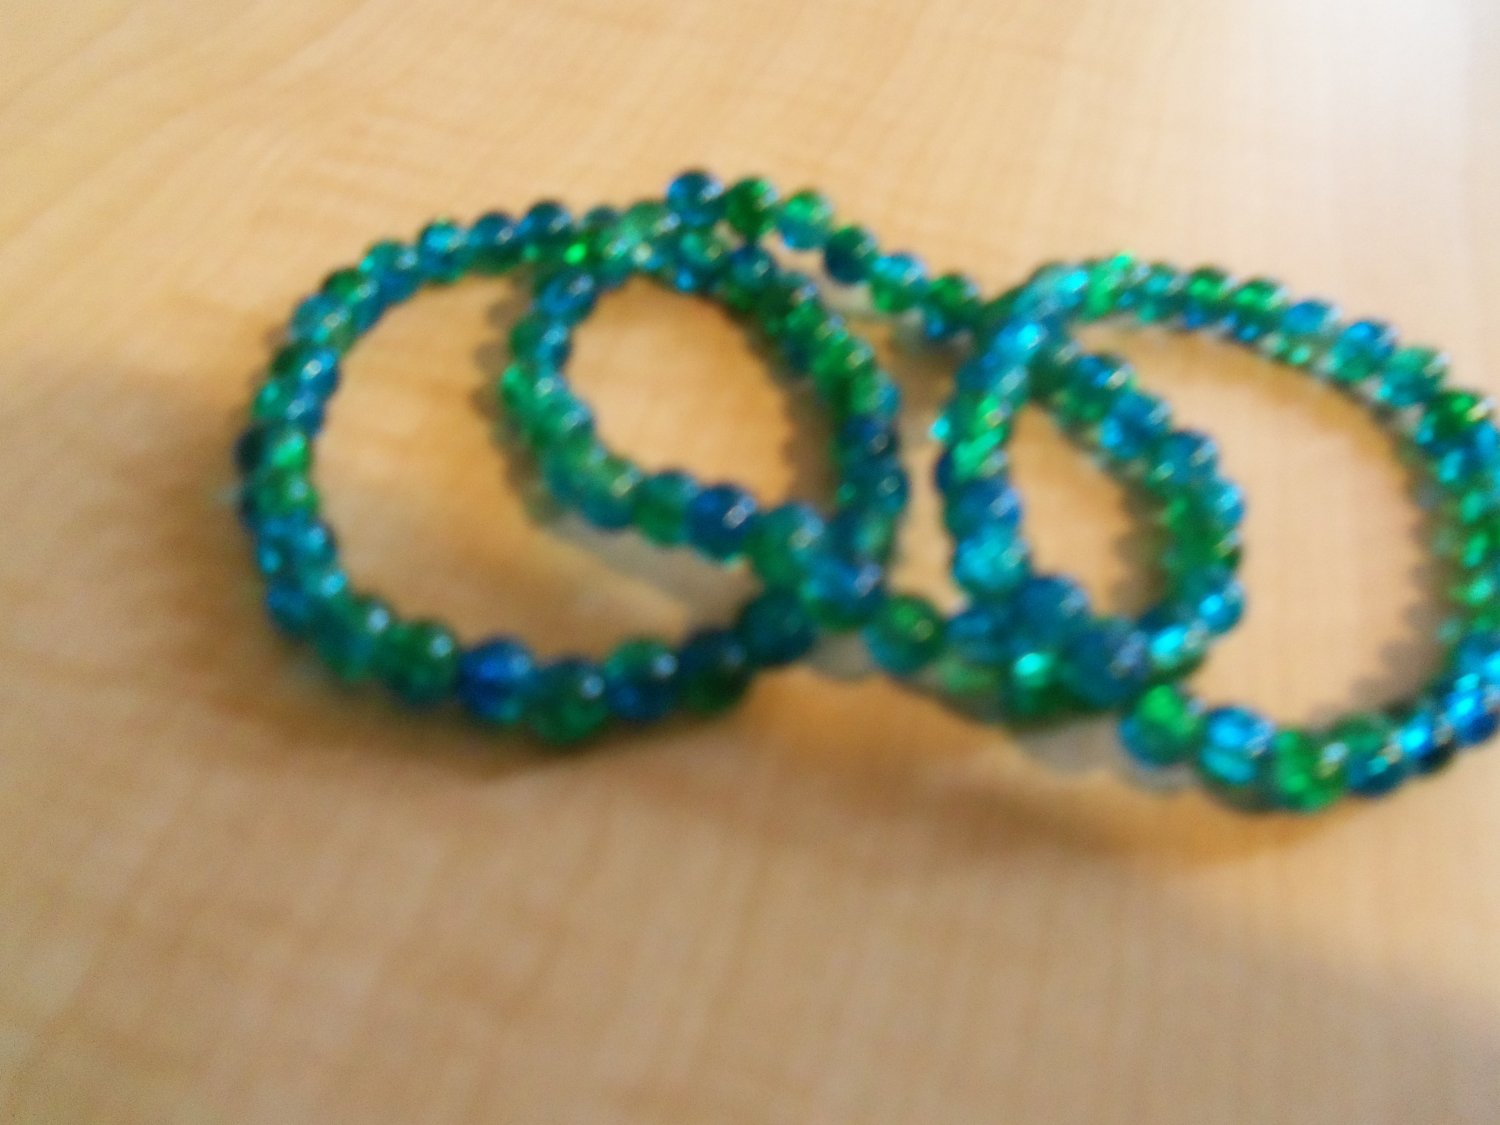 Blue and Green Cracked Glass Bead Bracelets